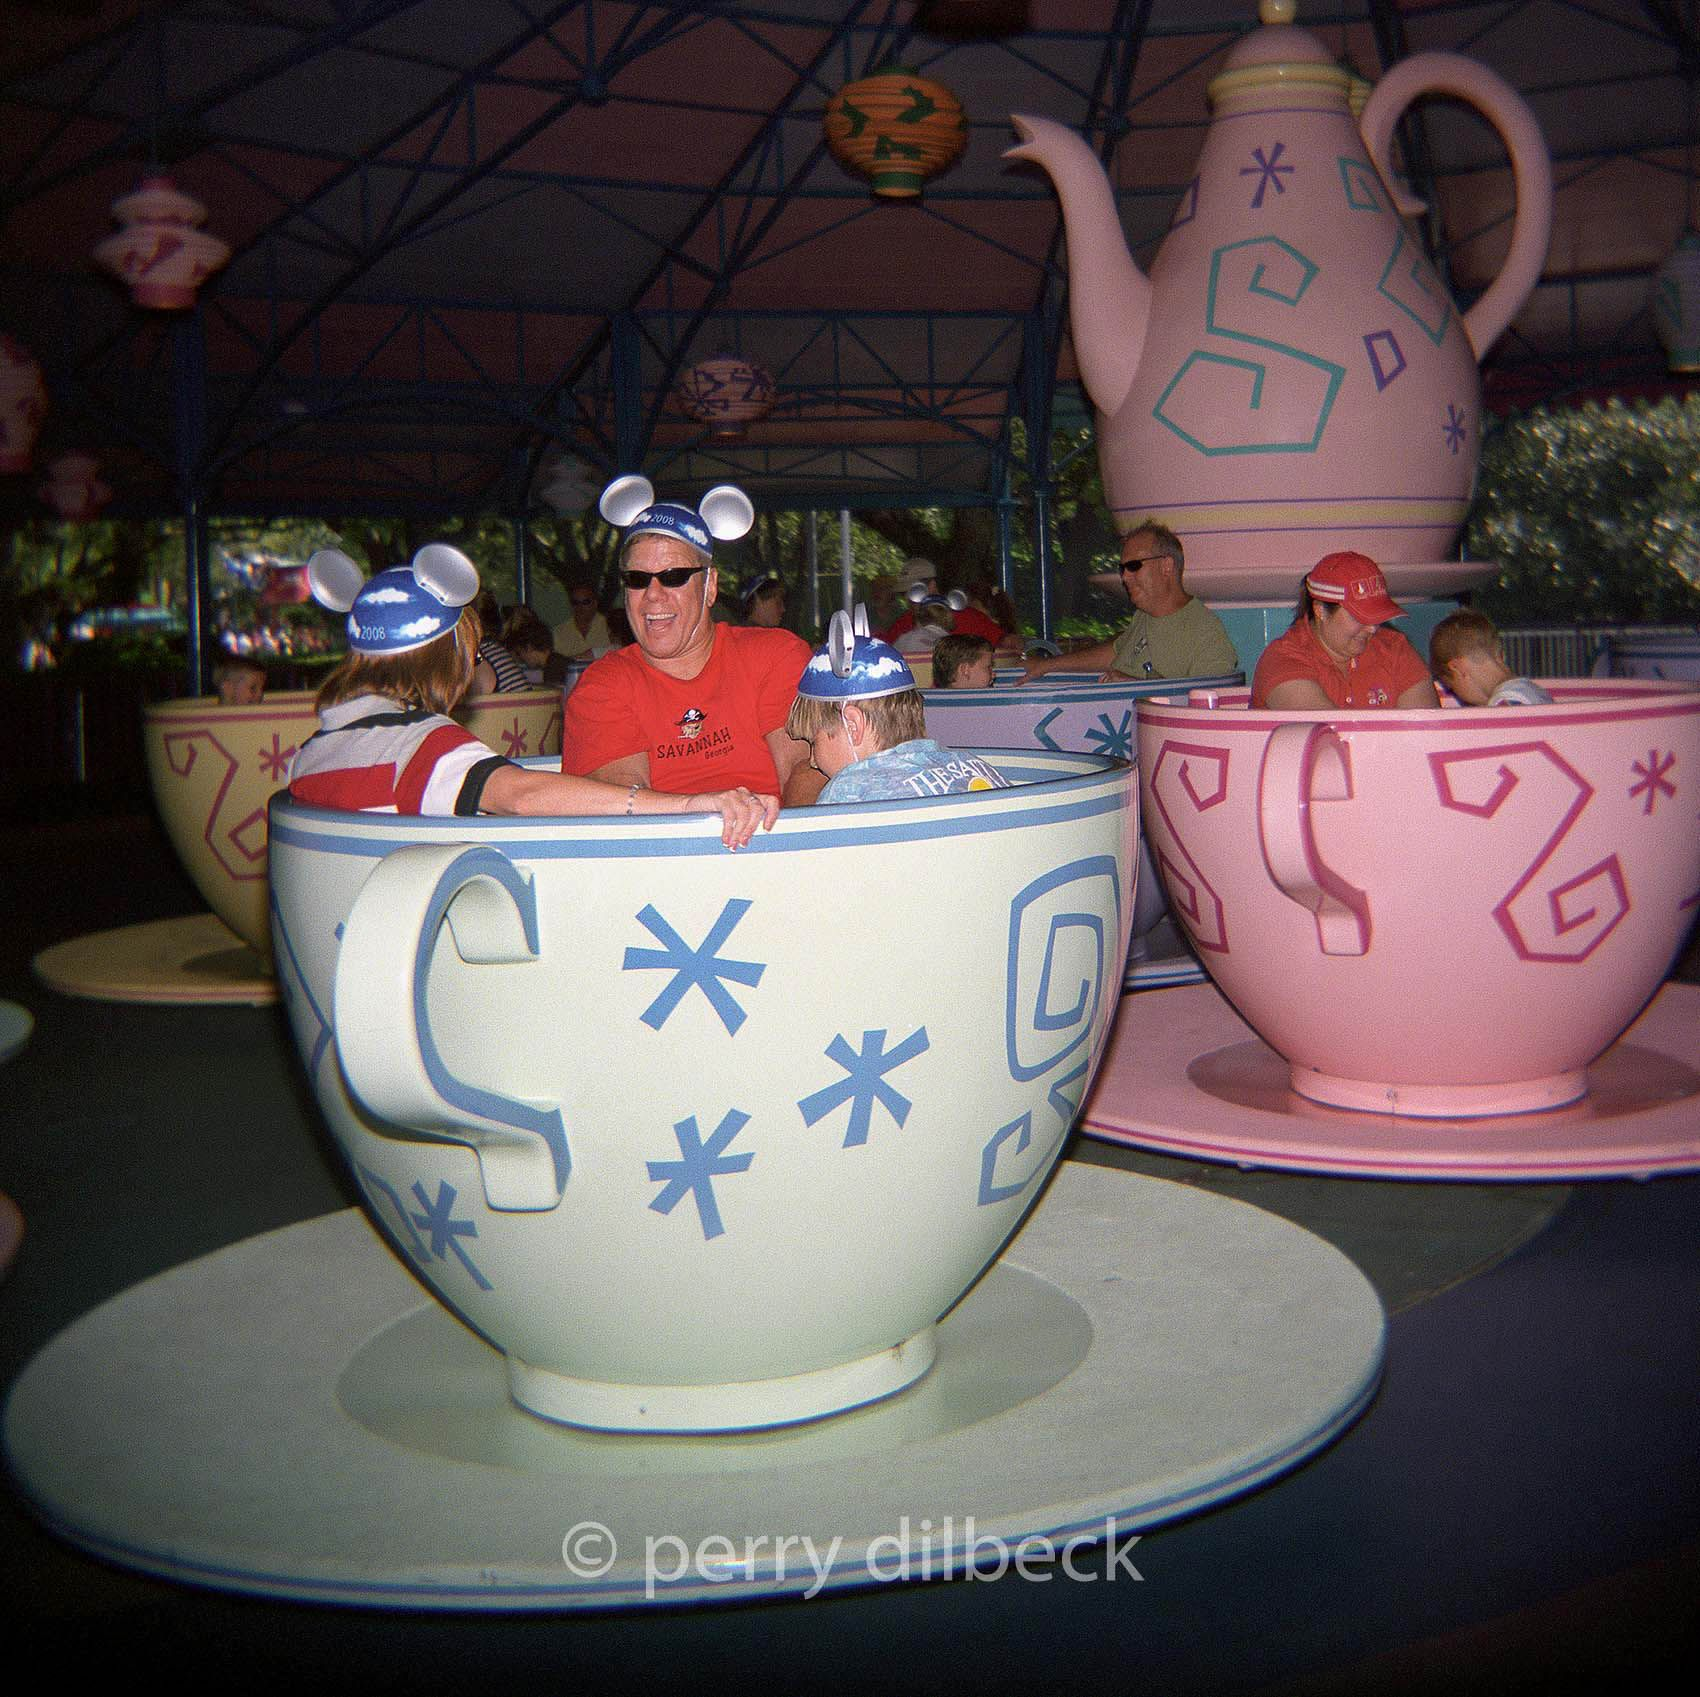 25family teacups sharpenedretouchedsmall.jpg